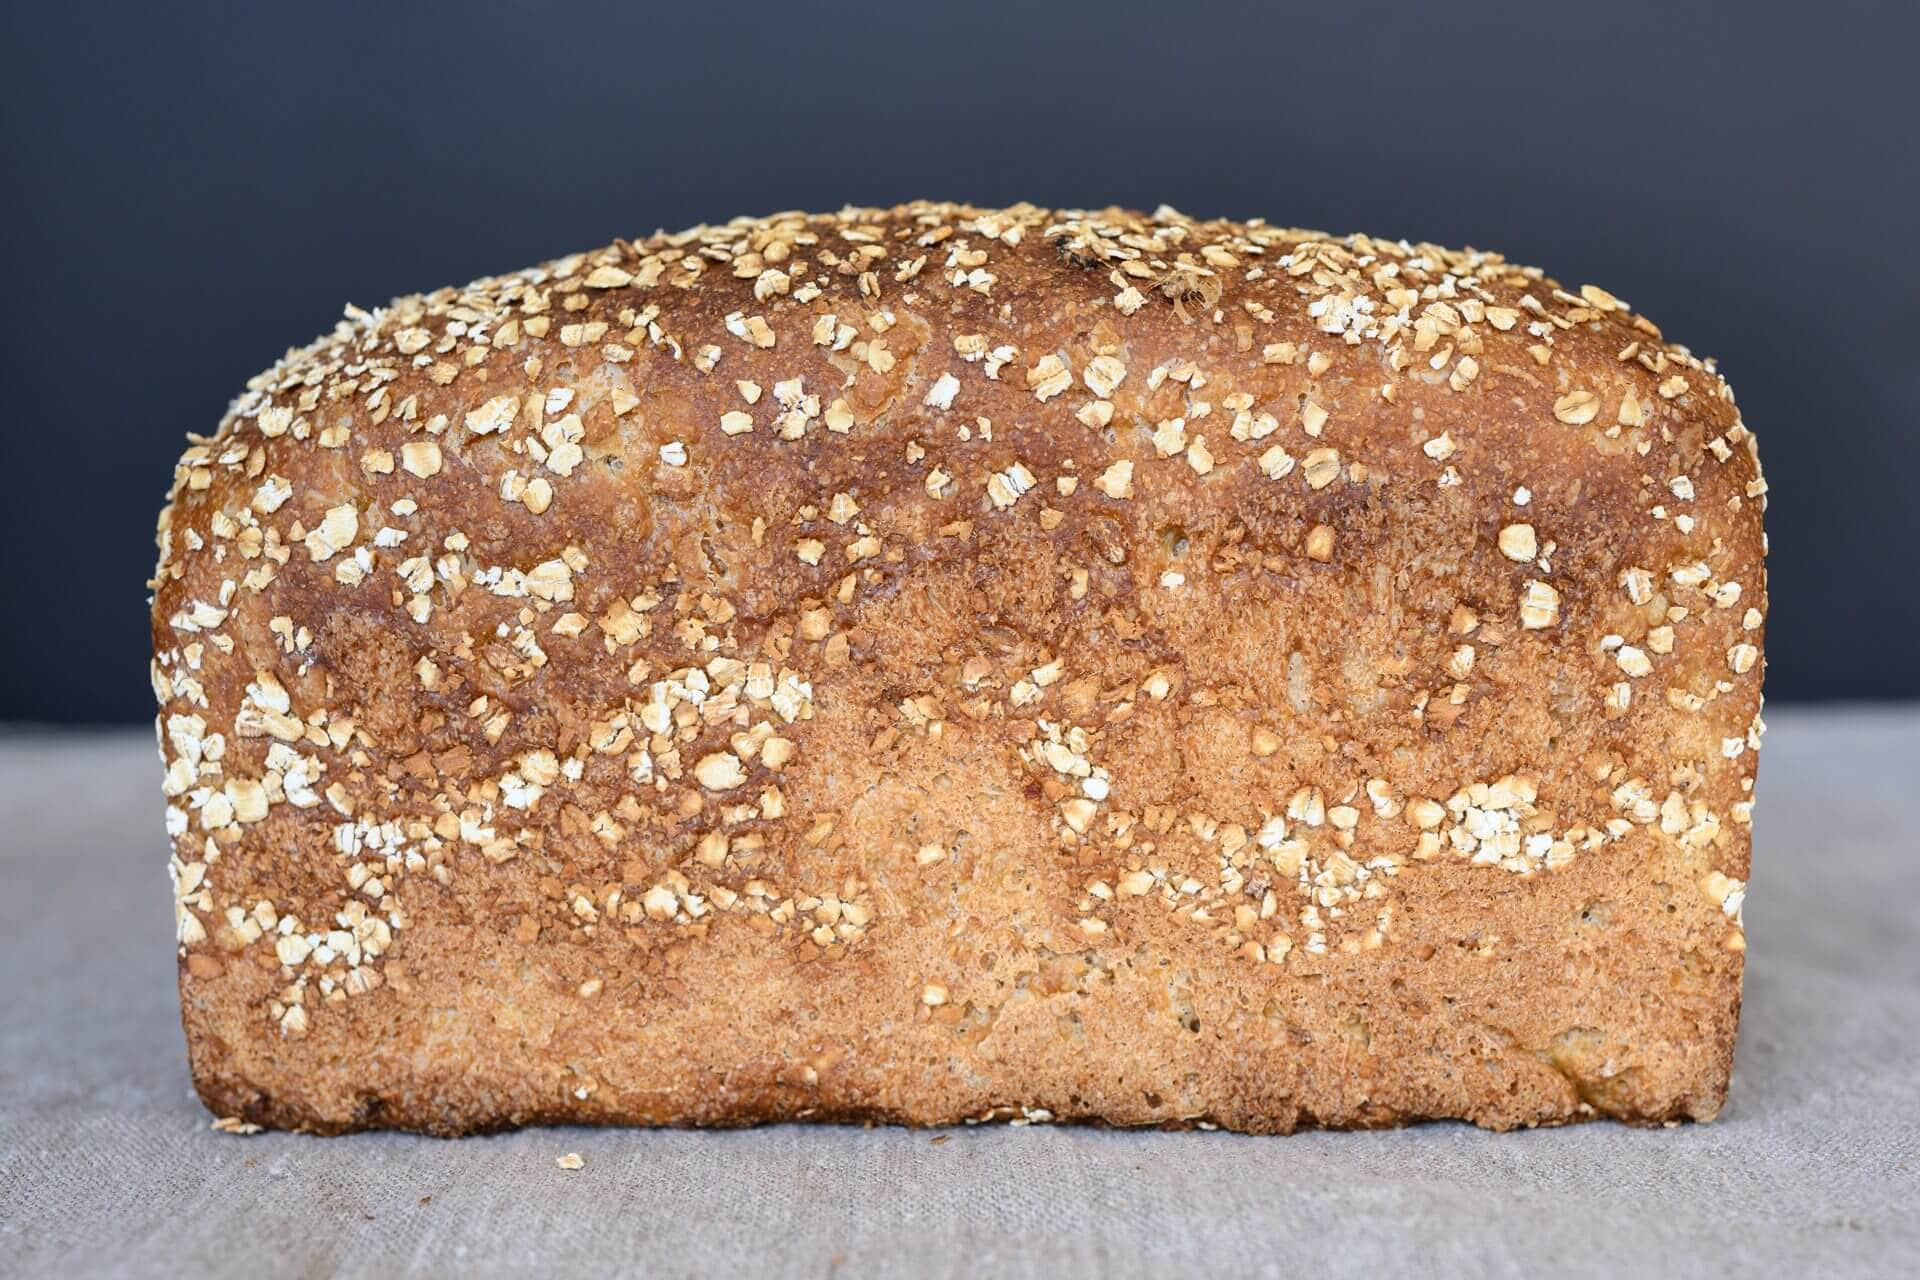 Crust with oats